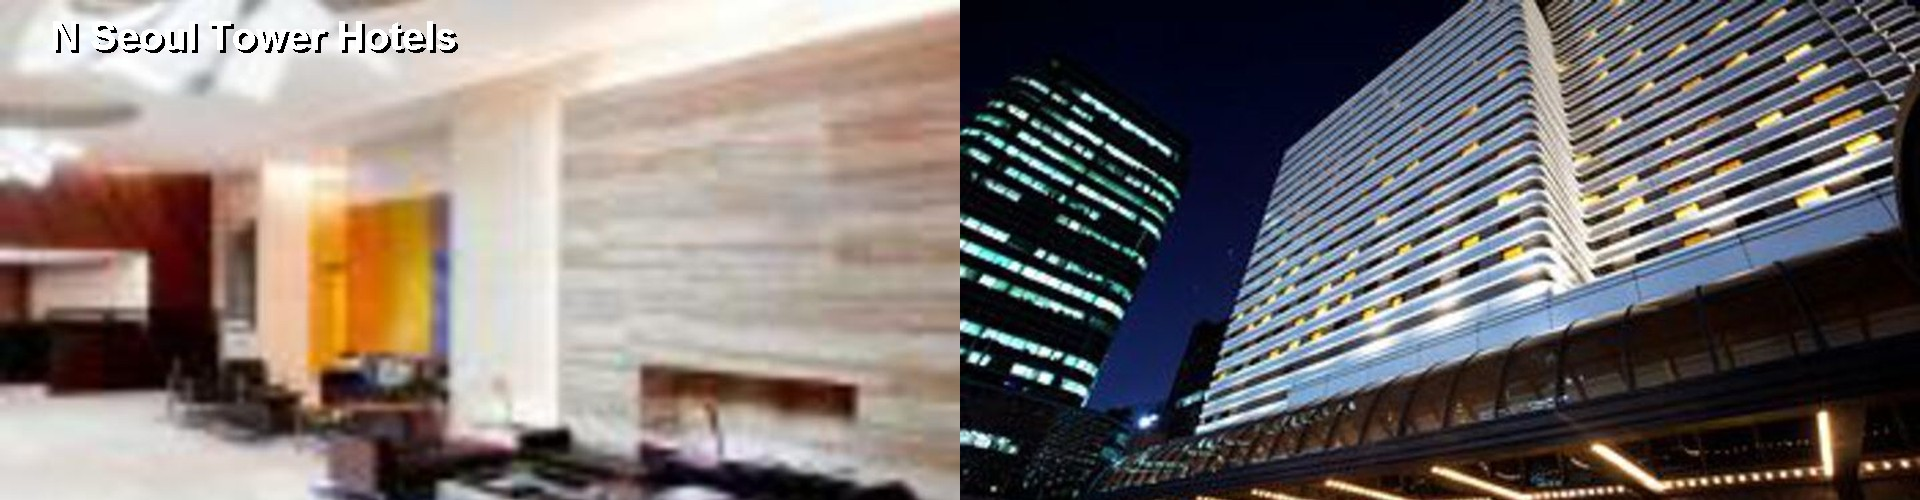 Accommodation details seoul luxury hotel accommodations rooms - 5 Best Hotels Near N Seoul Tower